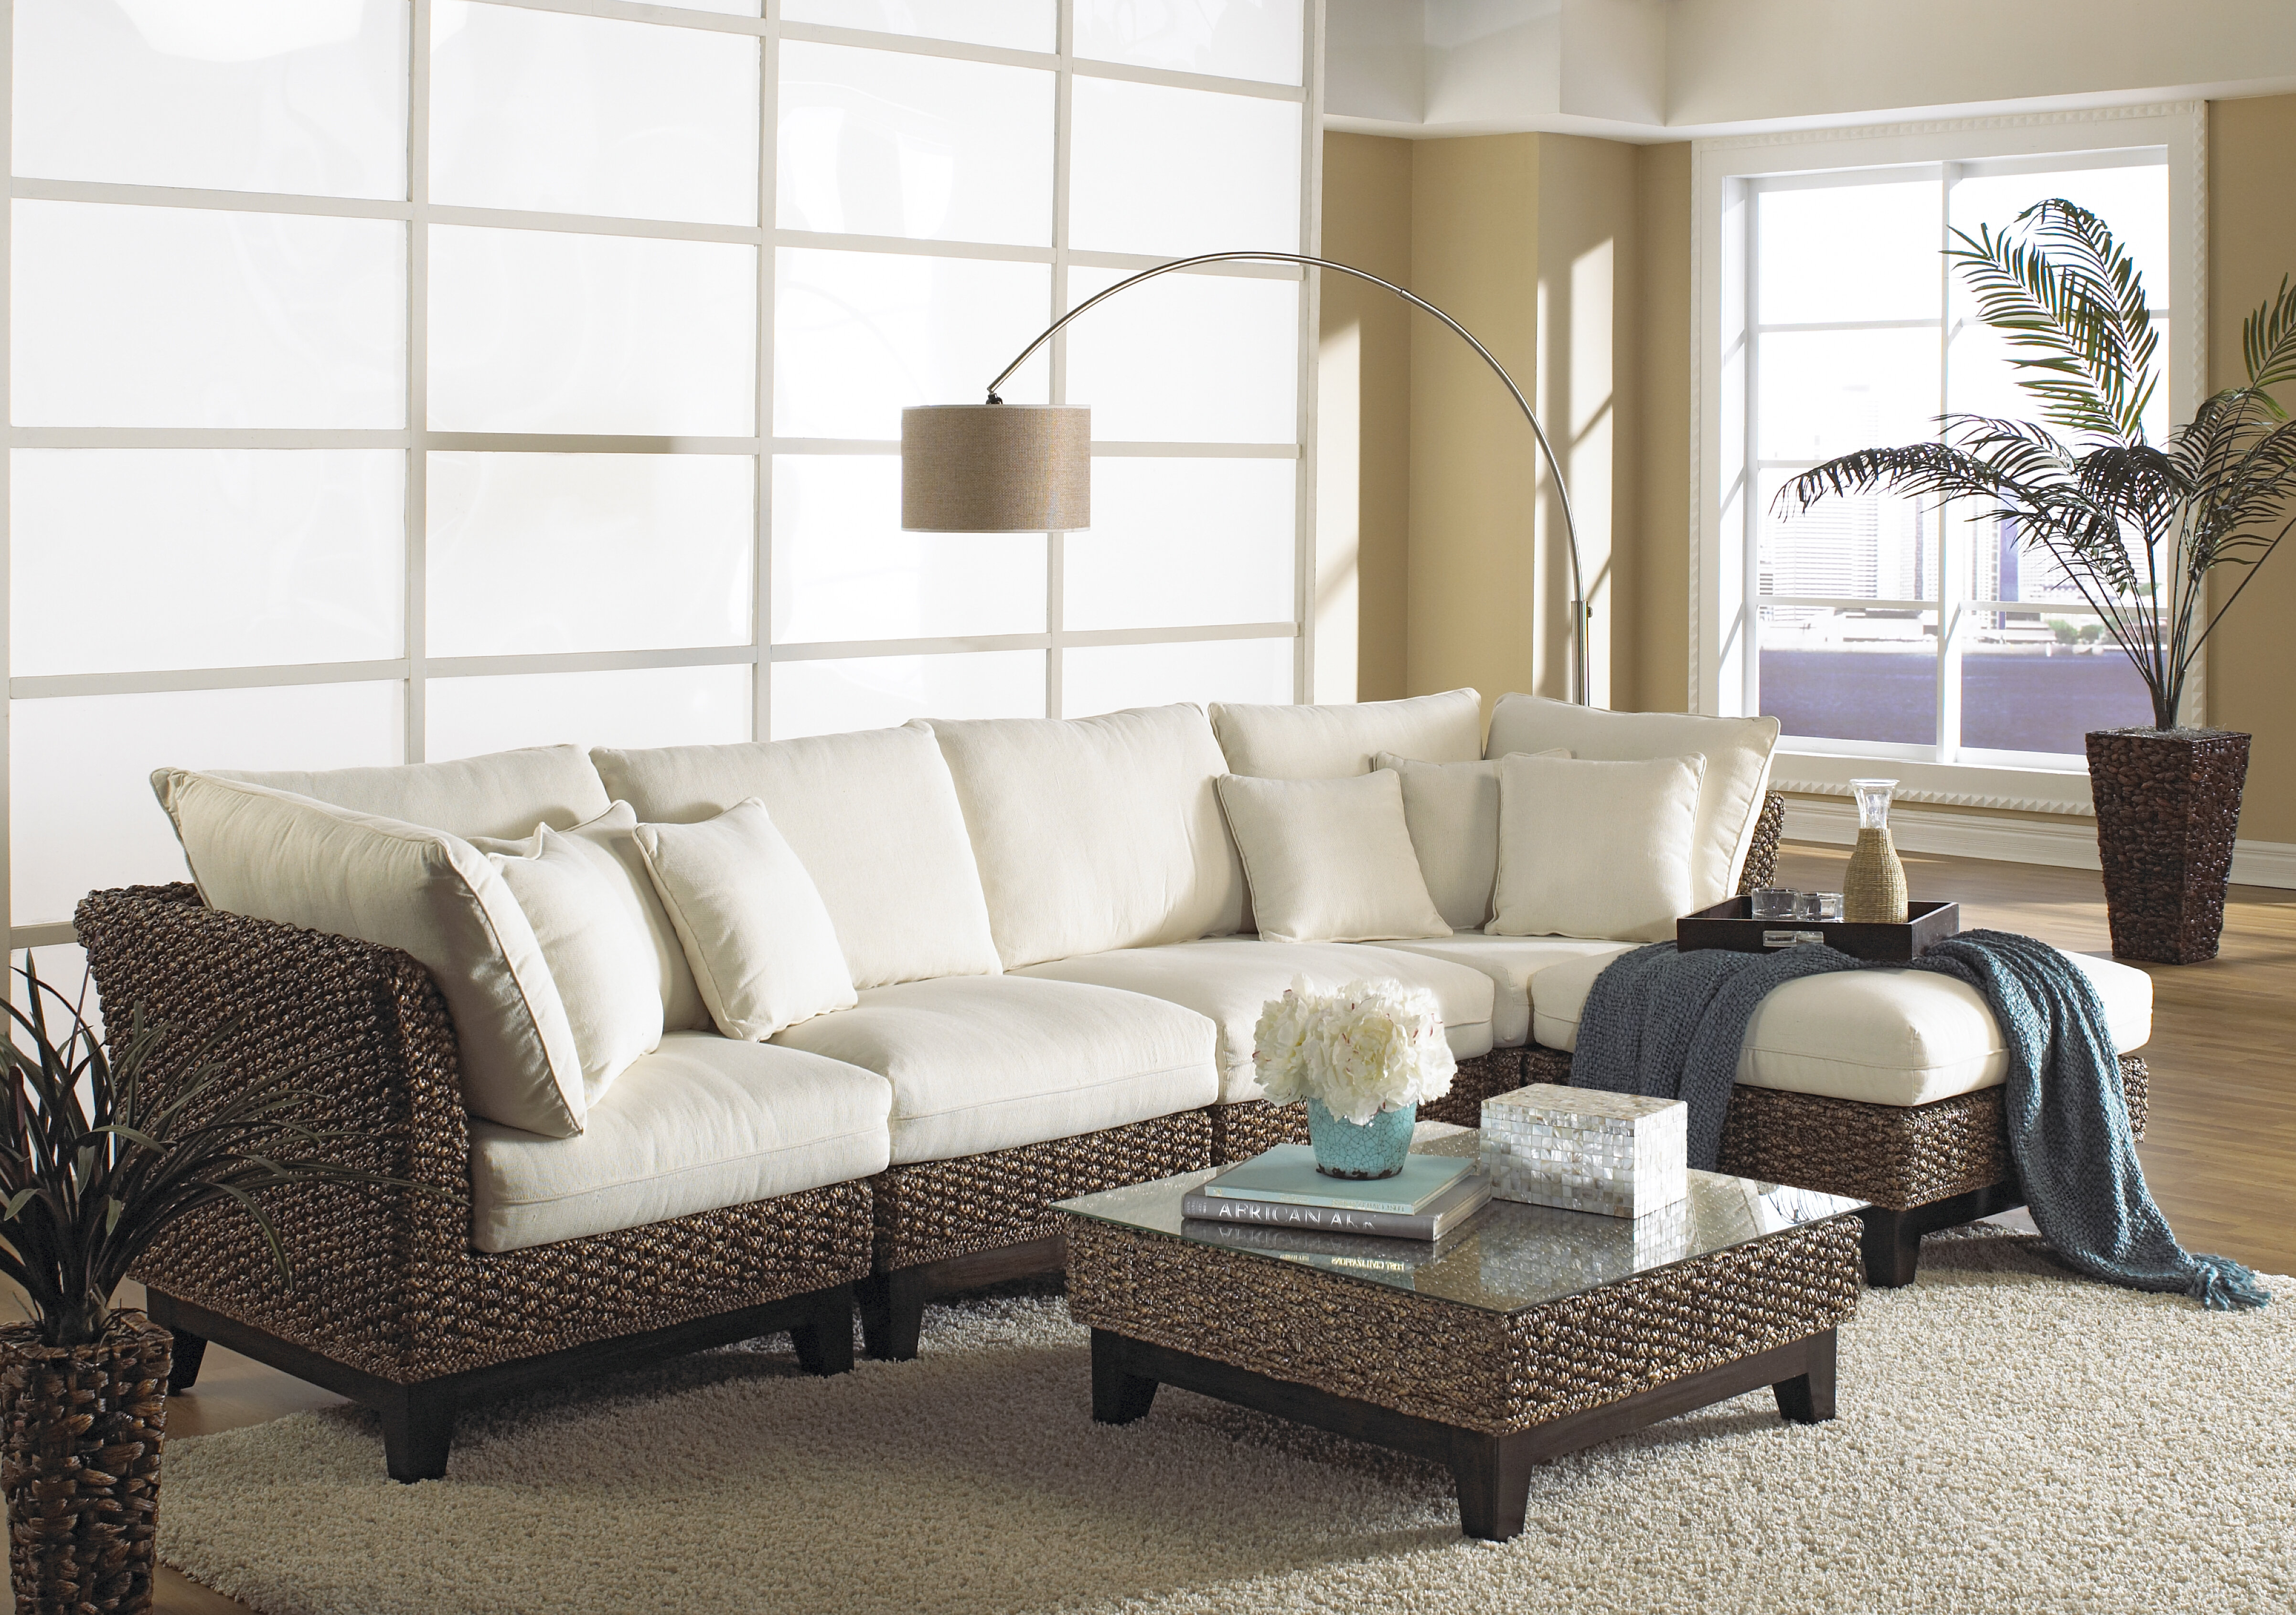 Panama Jack Sunroom Sanibel Sectional with Ottoman & Reviews | Wayfair